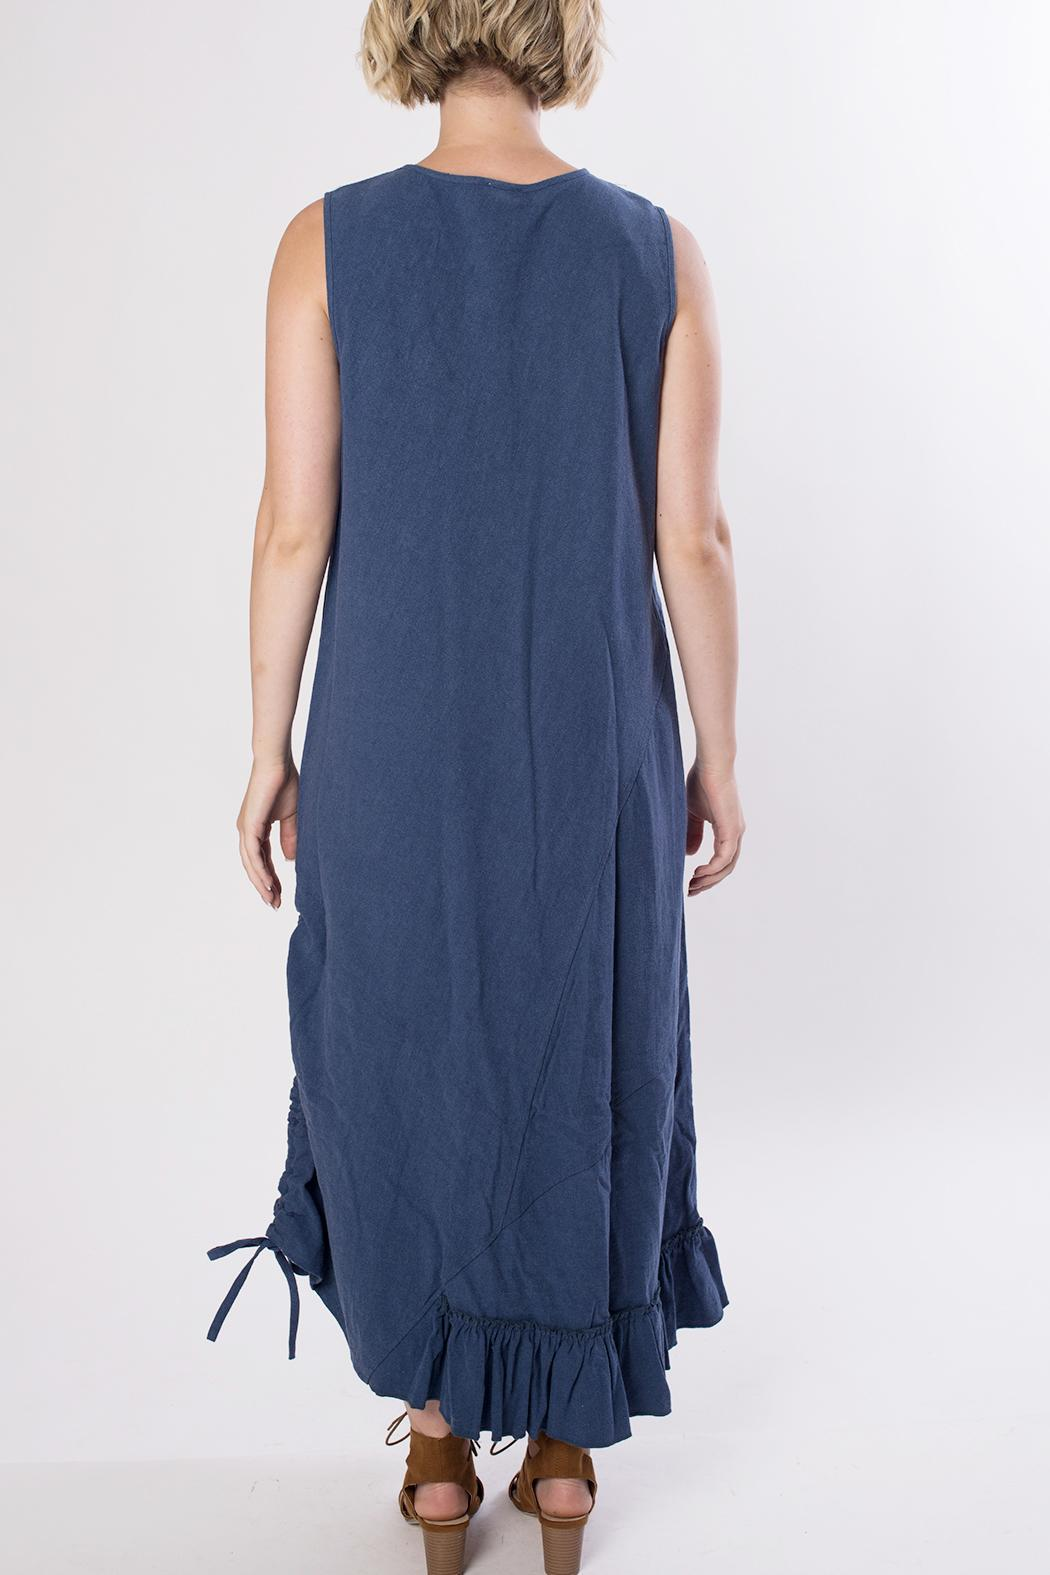 Dorman Blue Midi Dress - Side Cropped Image